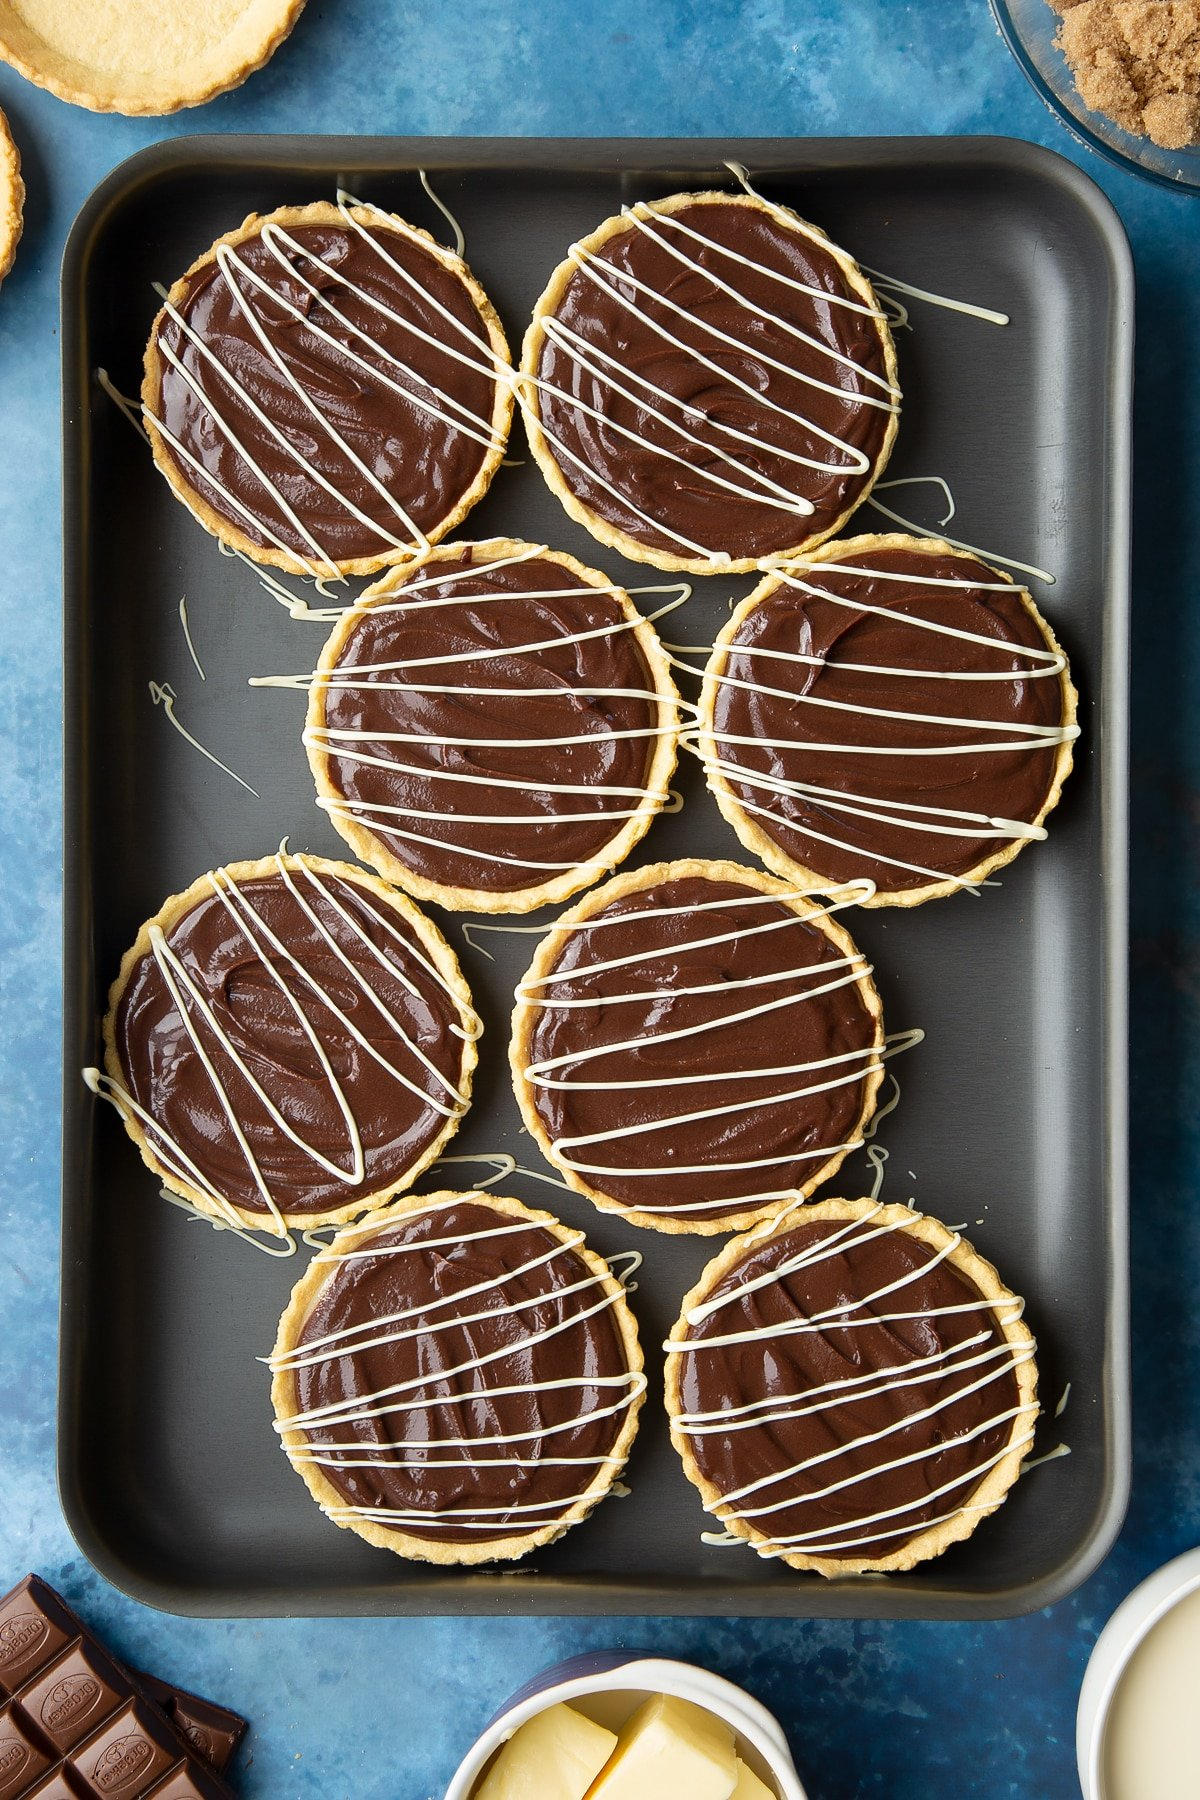 Mini chocolate tarts decorated with drizzled white chocolate on a large metal tray.